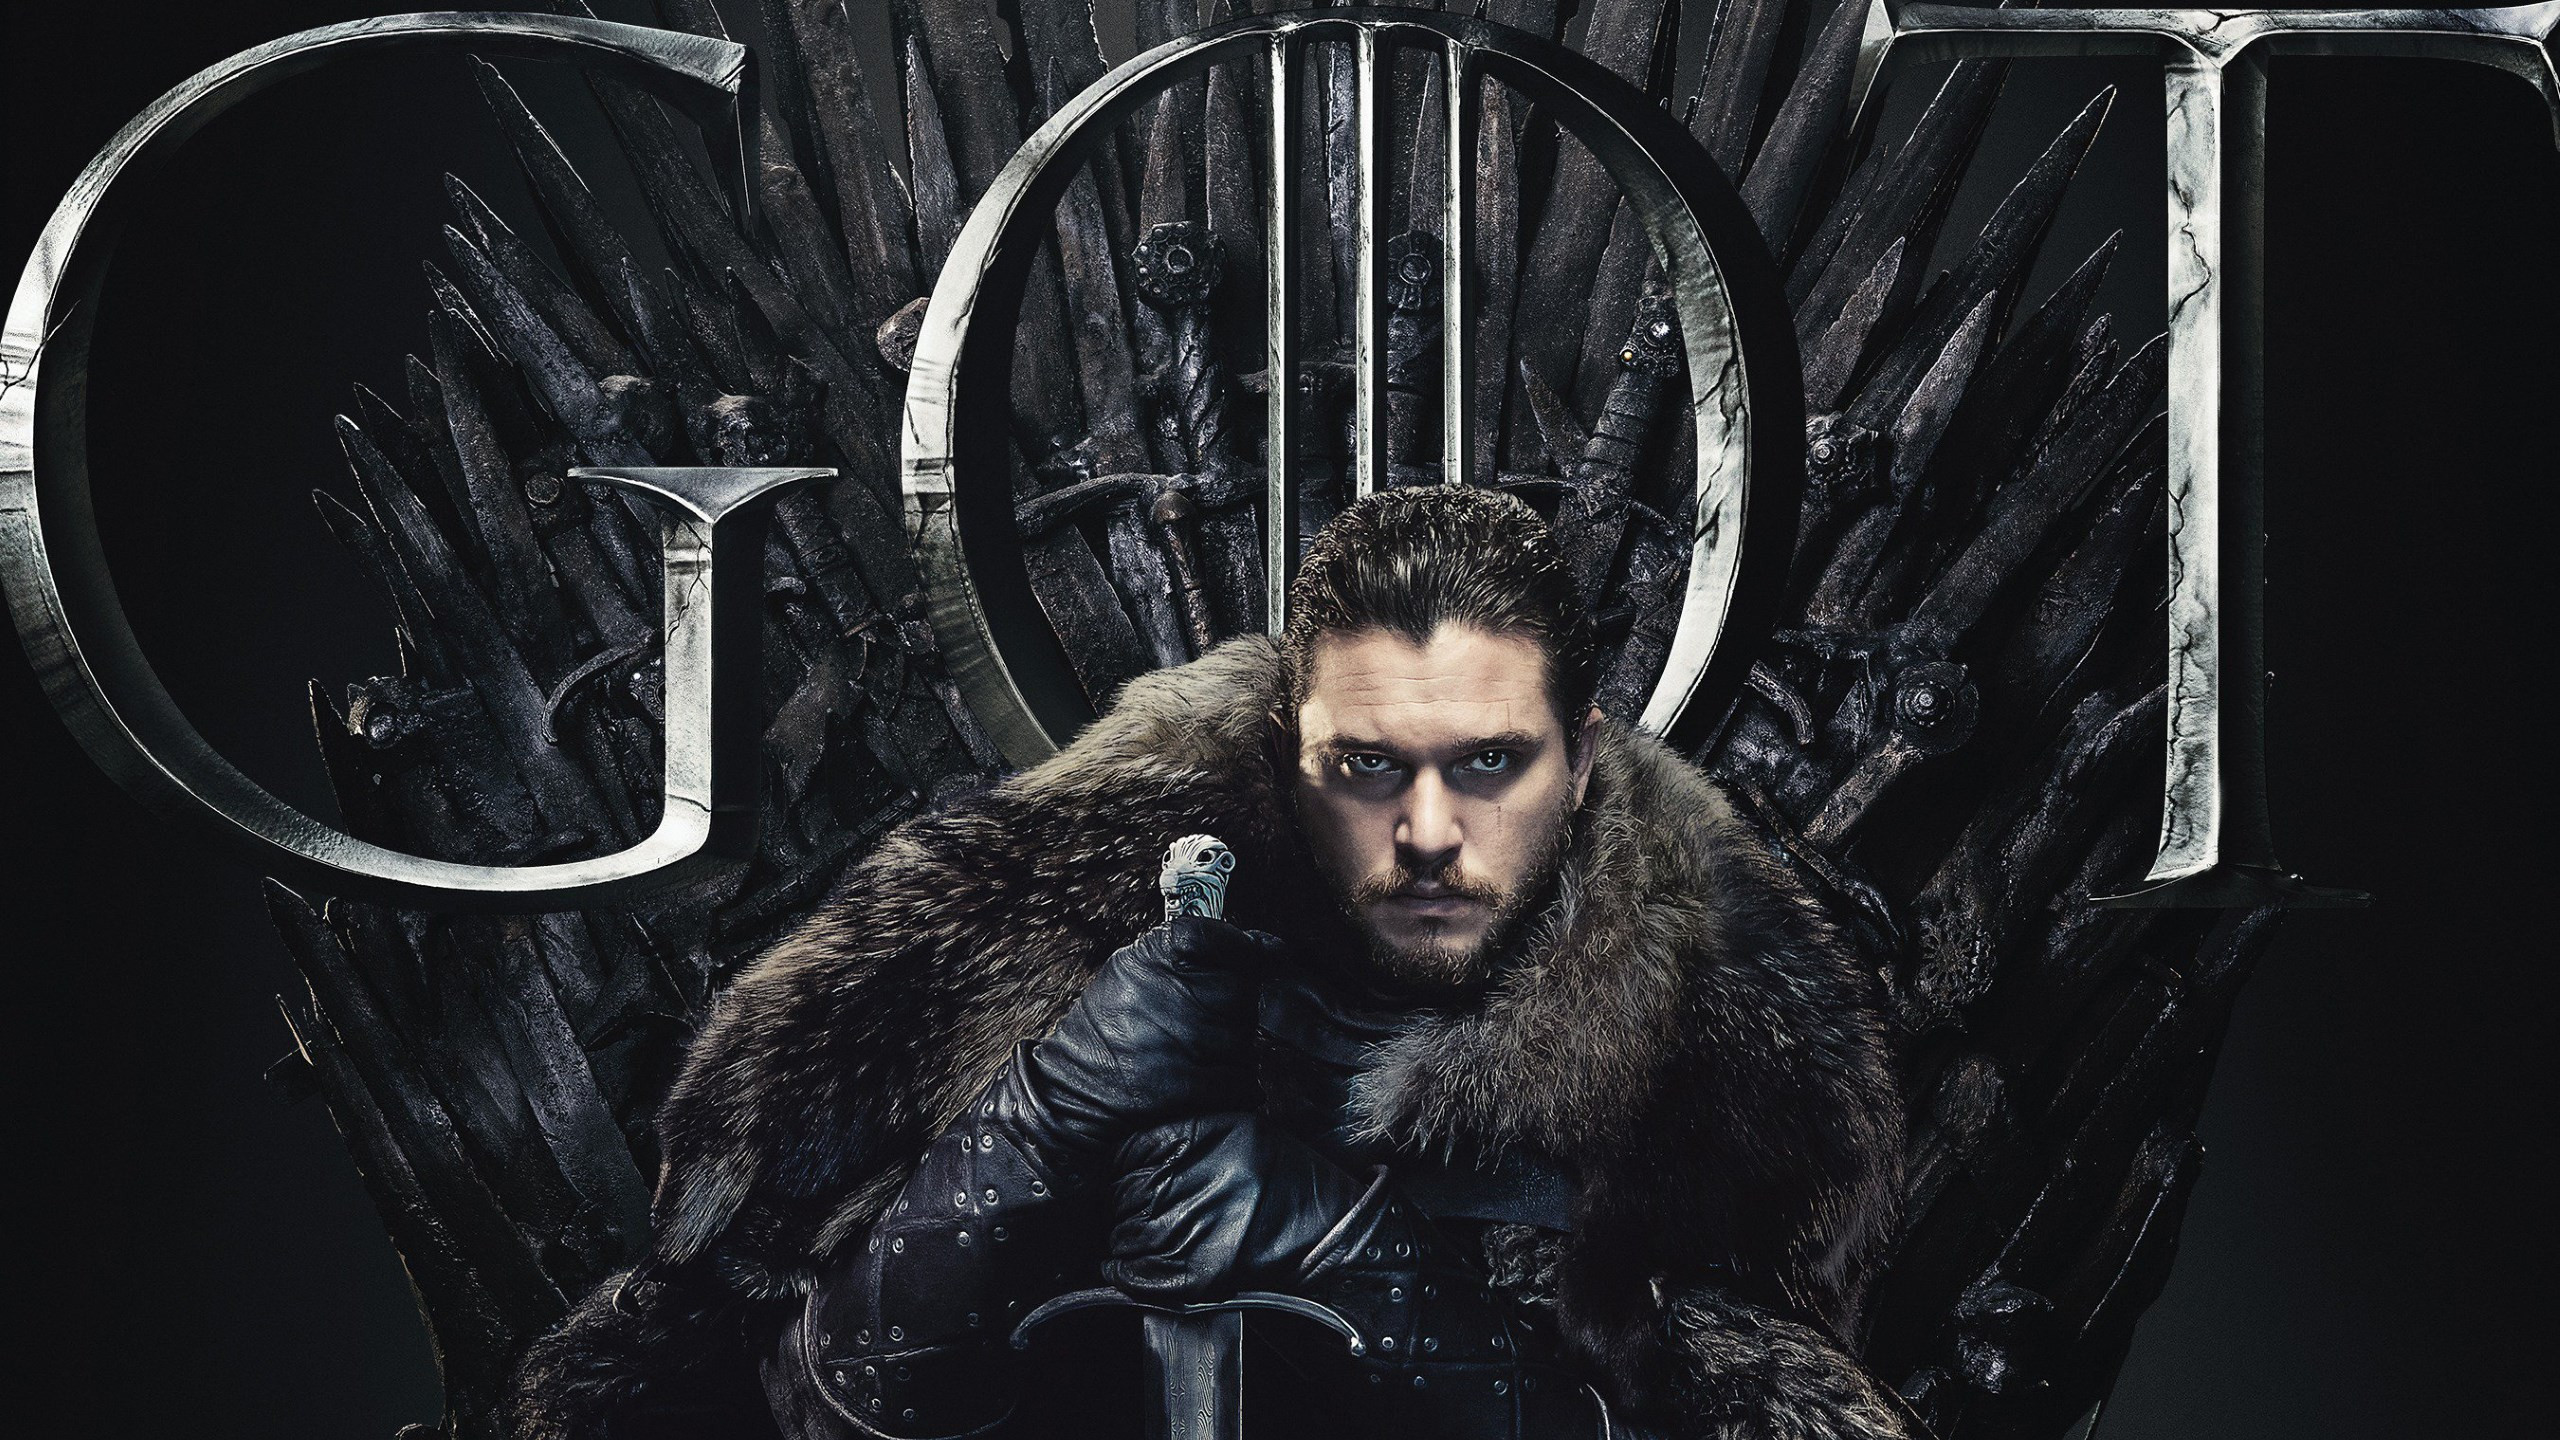 Game of Thrones 8 wallpaper 2560x1440